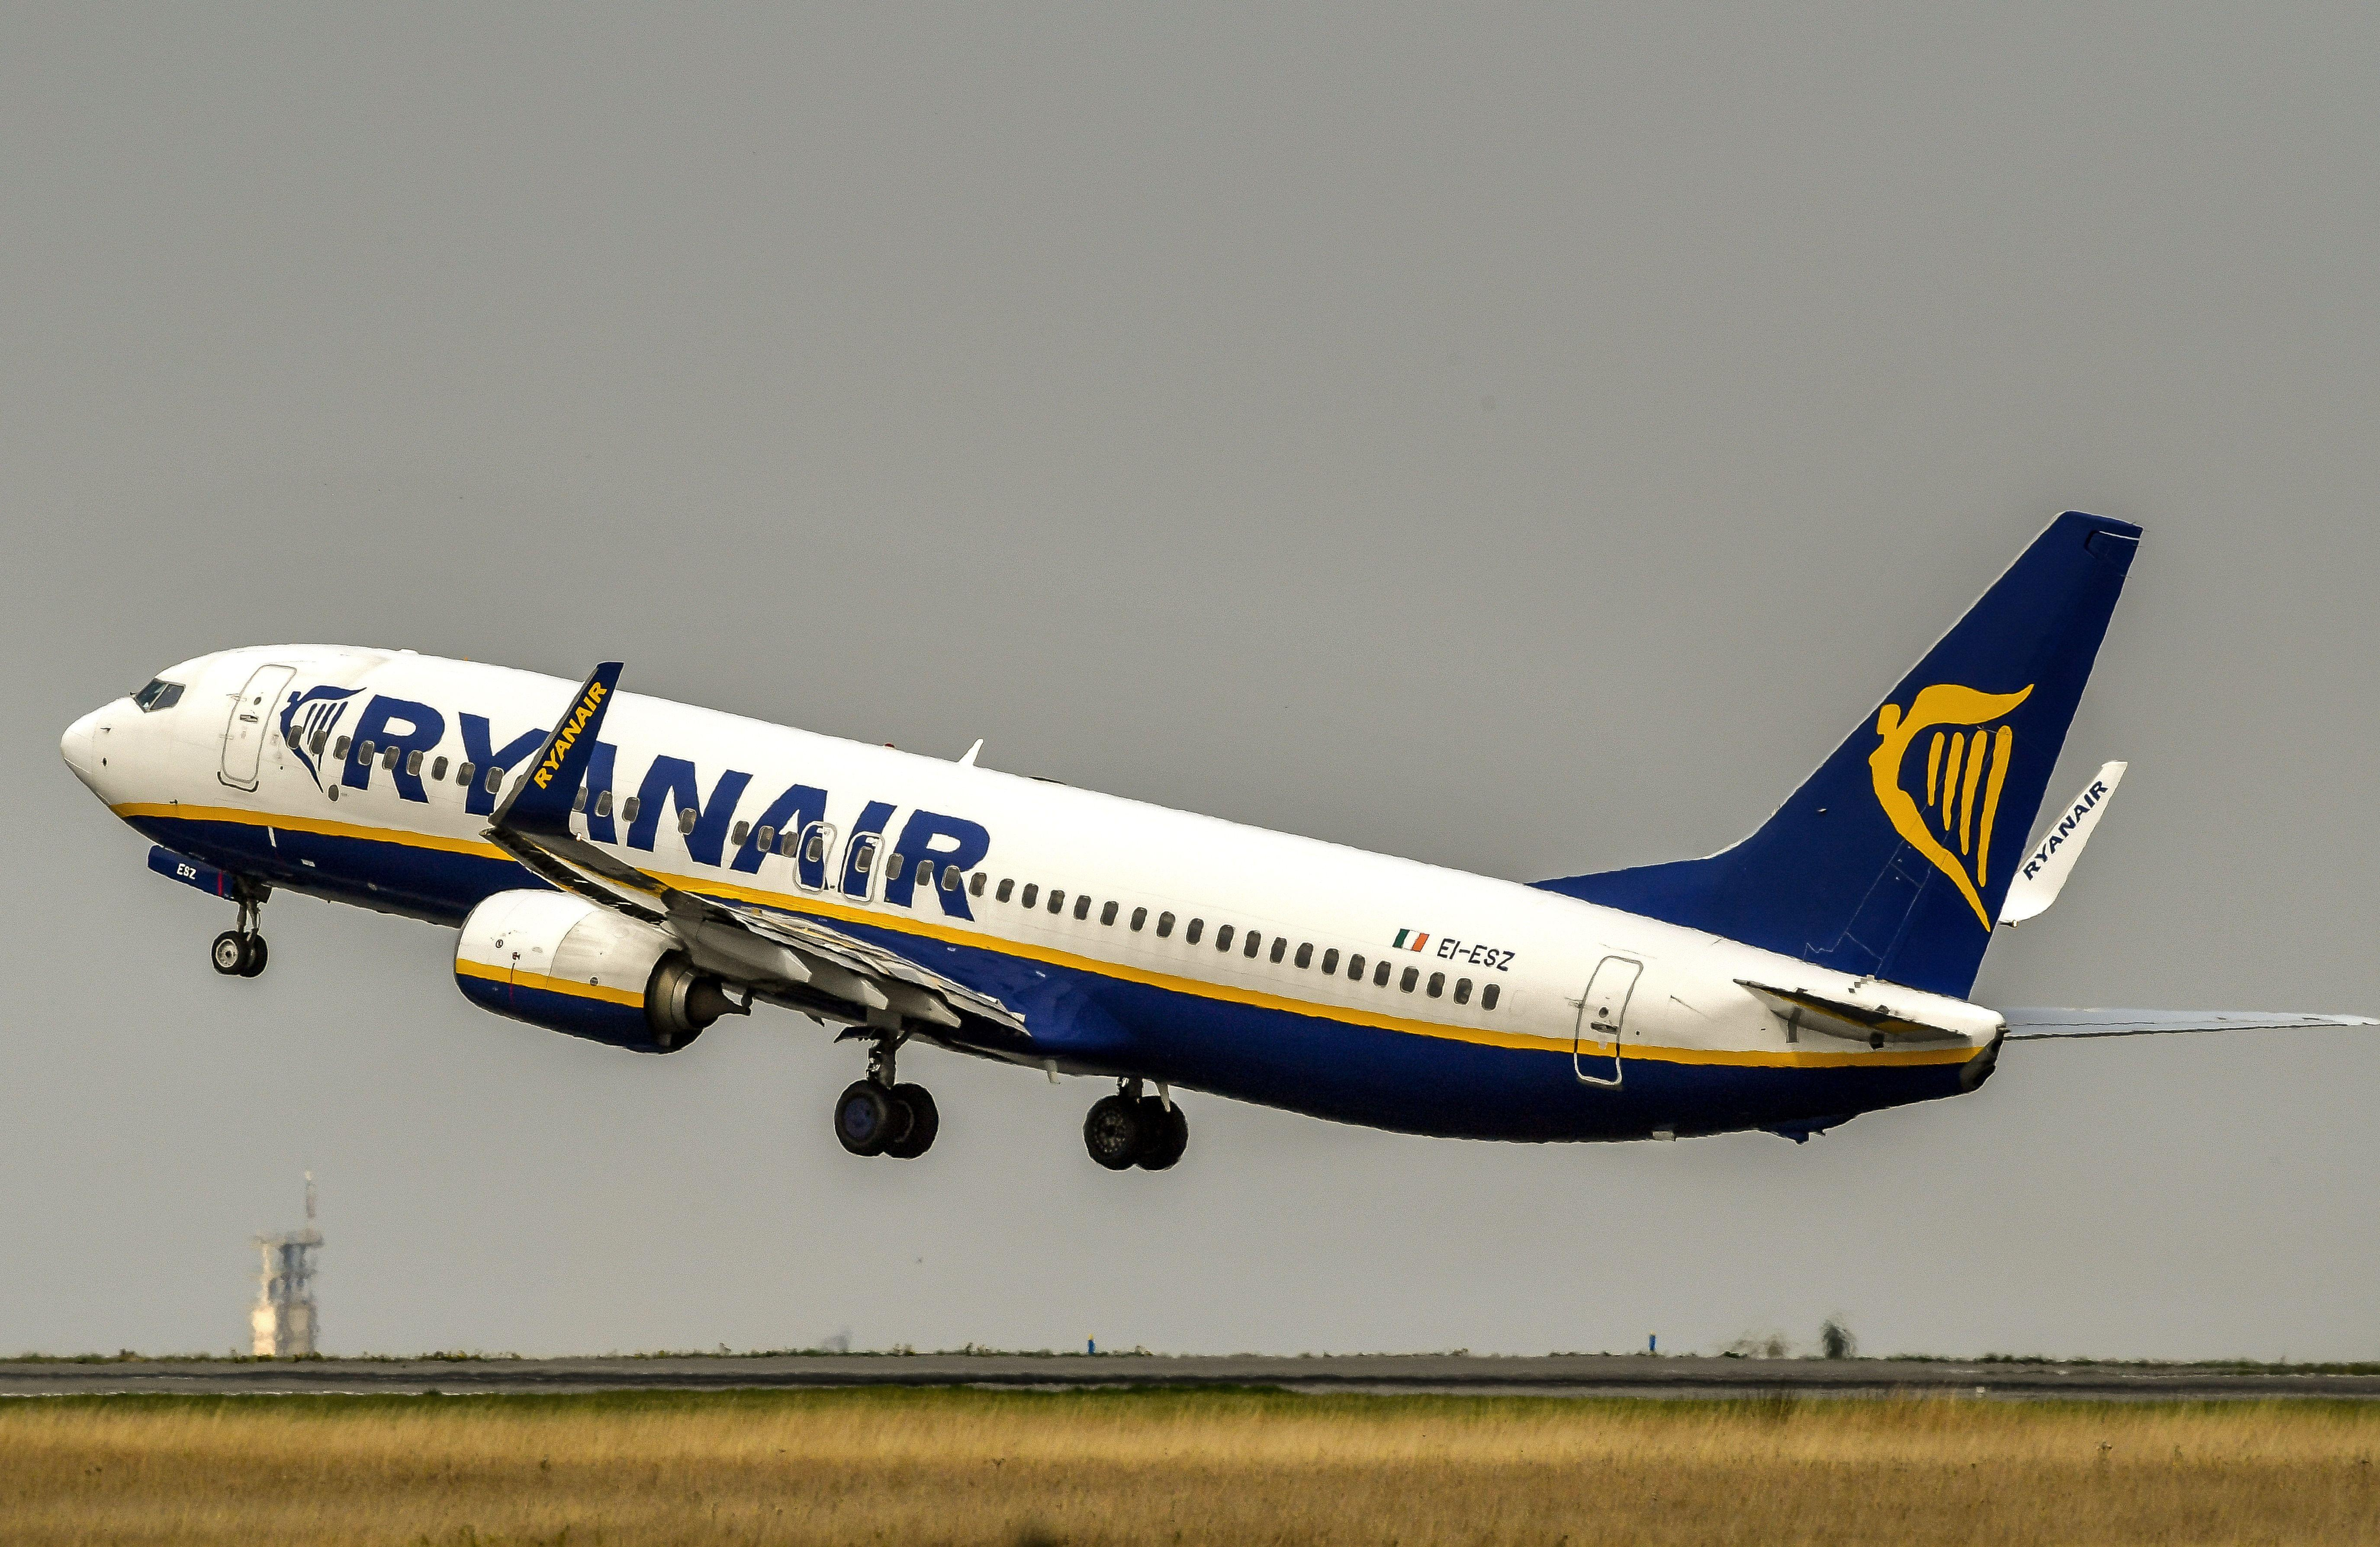 Ryanair passengers witness mid-air brawl on flight from Newcastle to Alicante